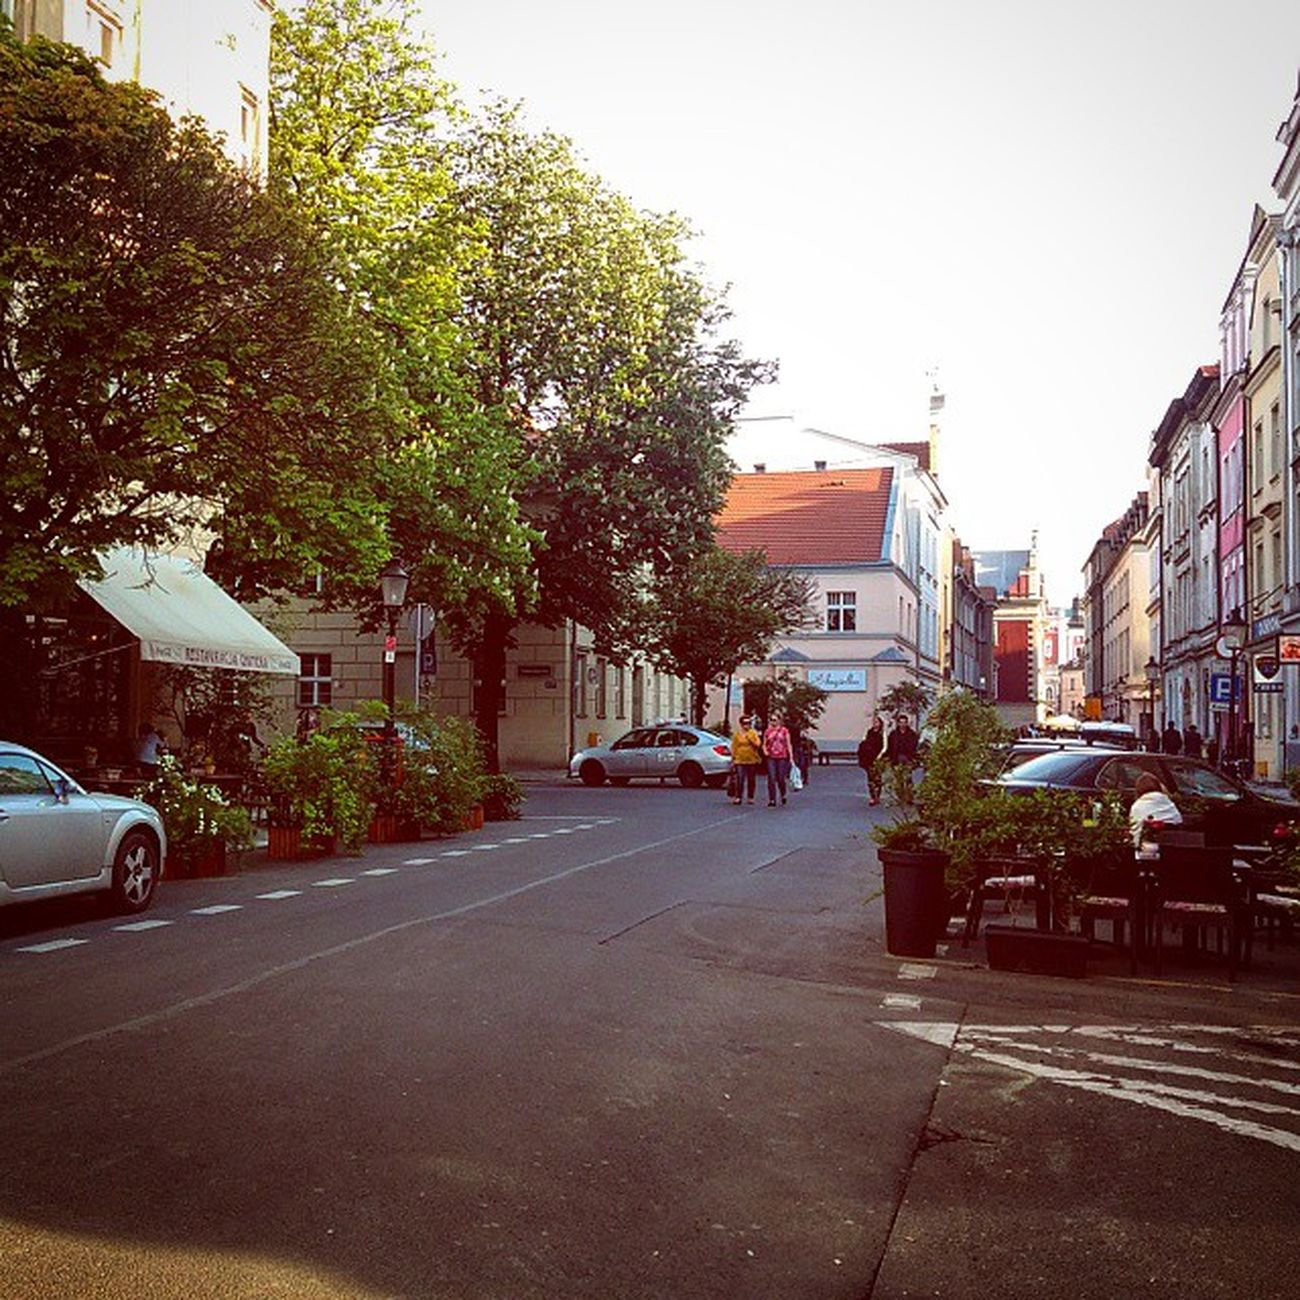 Old Town becomes green Oldmarket Historic District Oldtown downtown trees cafe architect architektura architecture city town urban street instalike instagood igerspoznan art Poznan Poland architecturelovers architectureporn architecturephotography picoftheday bestarchitecture best good